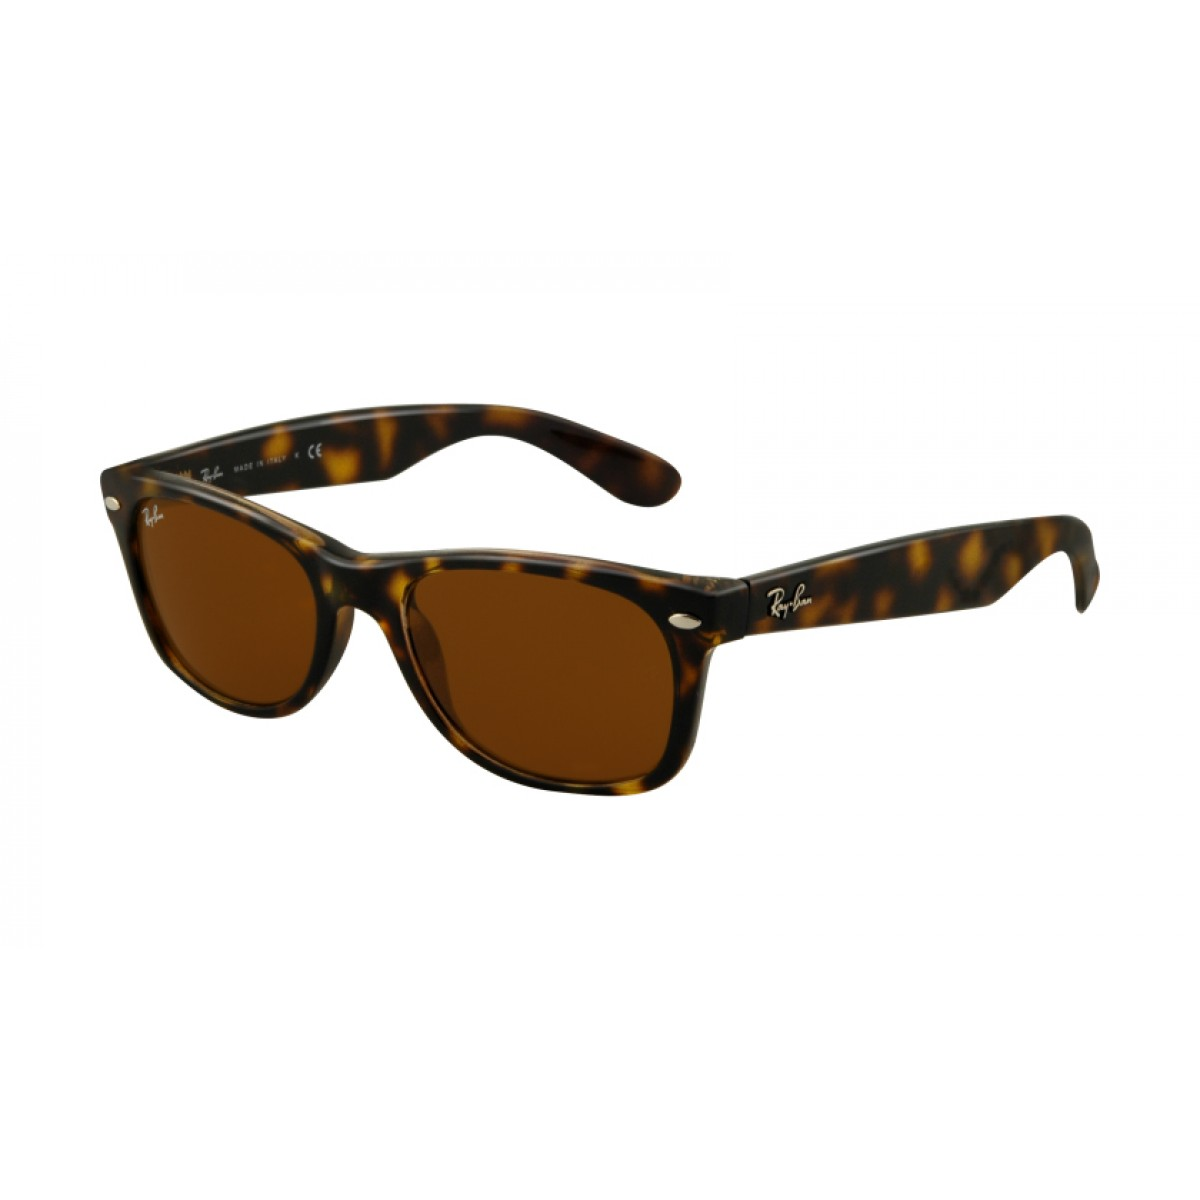 ray_ban_new_wayfarer_sunglasses_tortoiseshell_frame_with_brown_lenses_rb2132-21